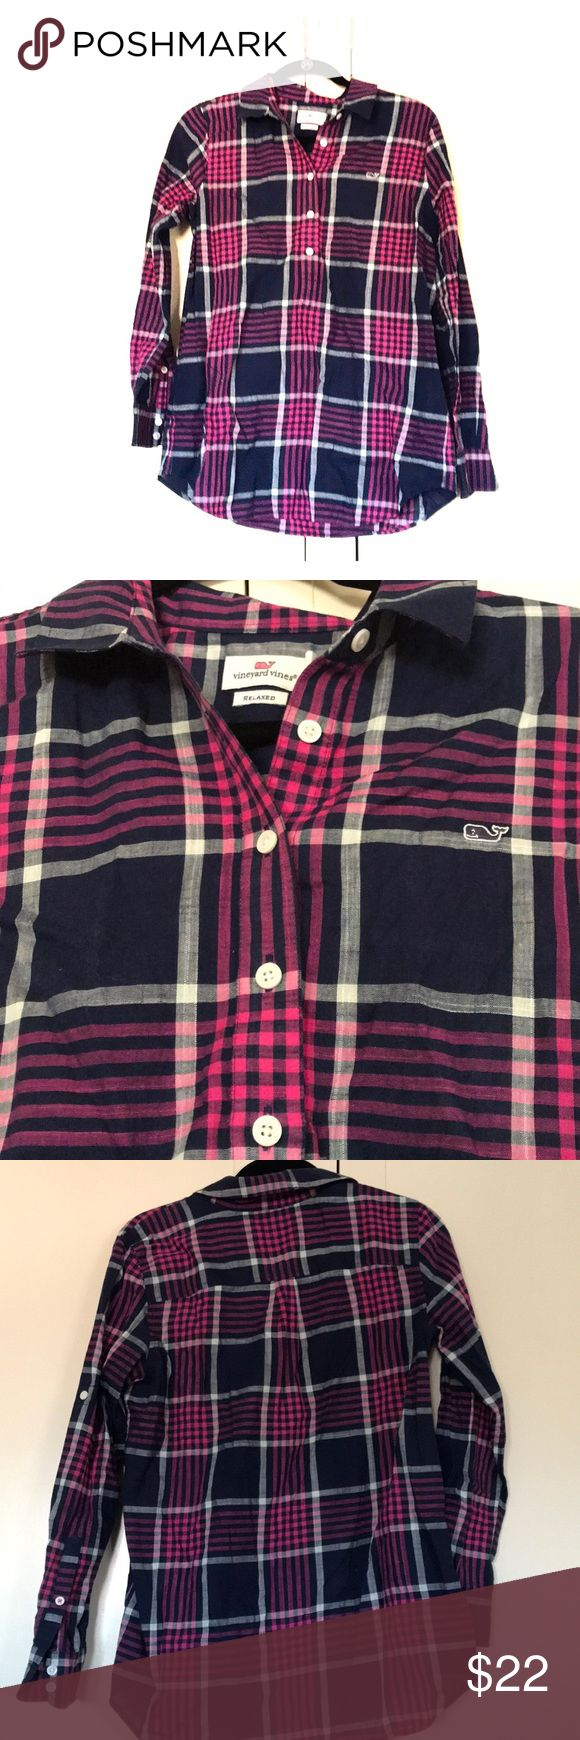 VINEYARD VINES flannel tunic Lightweight and slightly sheer. 5 buttons down the front but tunic style. Only worn 1x but could use a good pressing from being folded. Vineyard Vines Tops Button Down Shirts